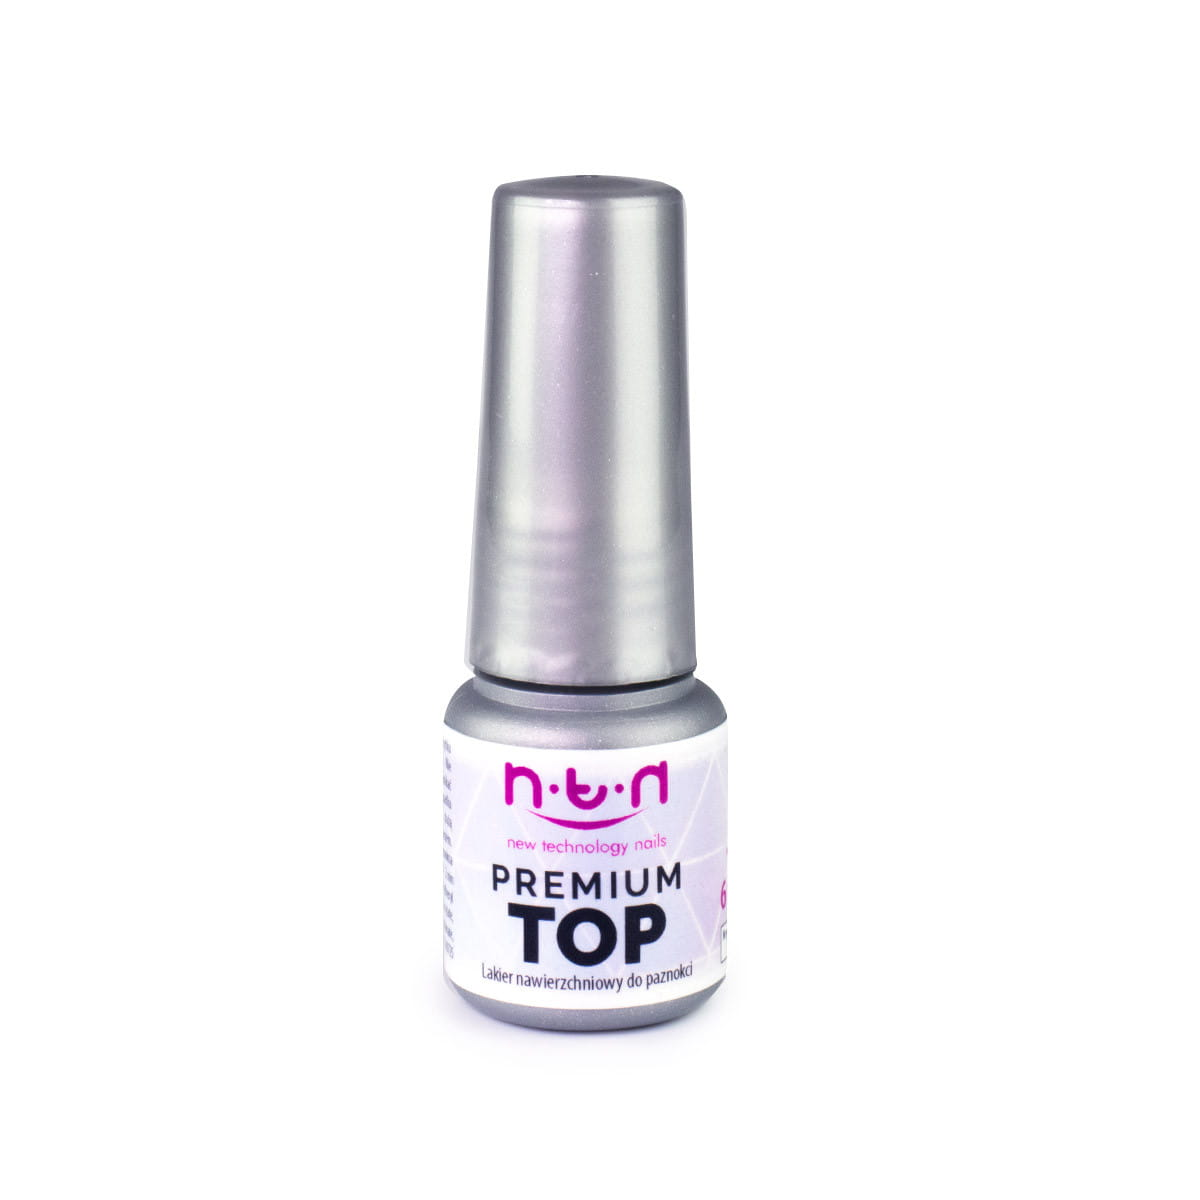 Top coat NTN Premium gel 6ml